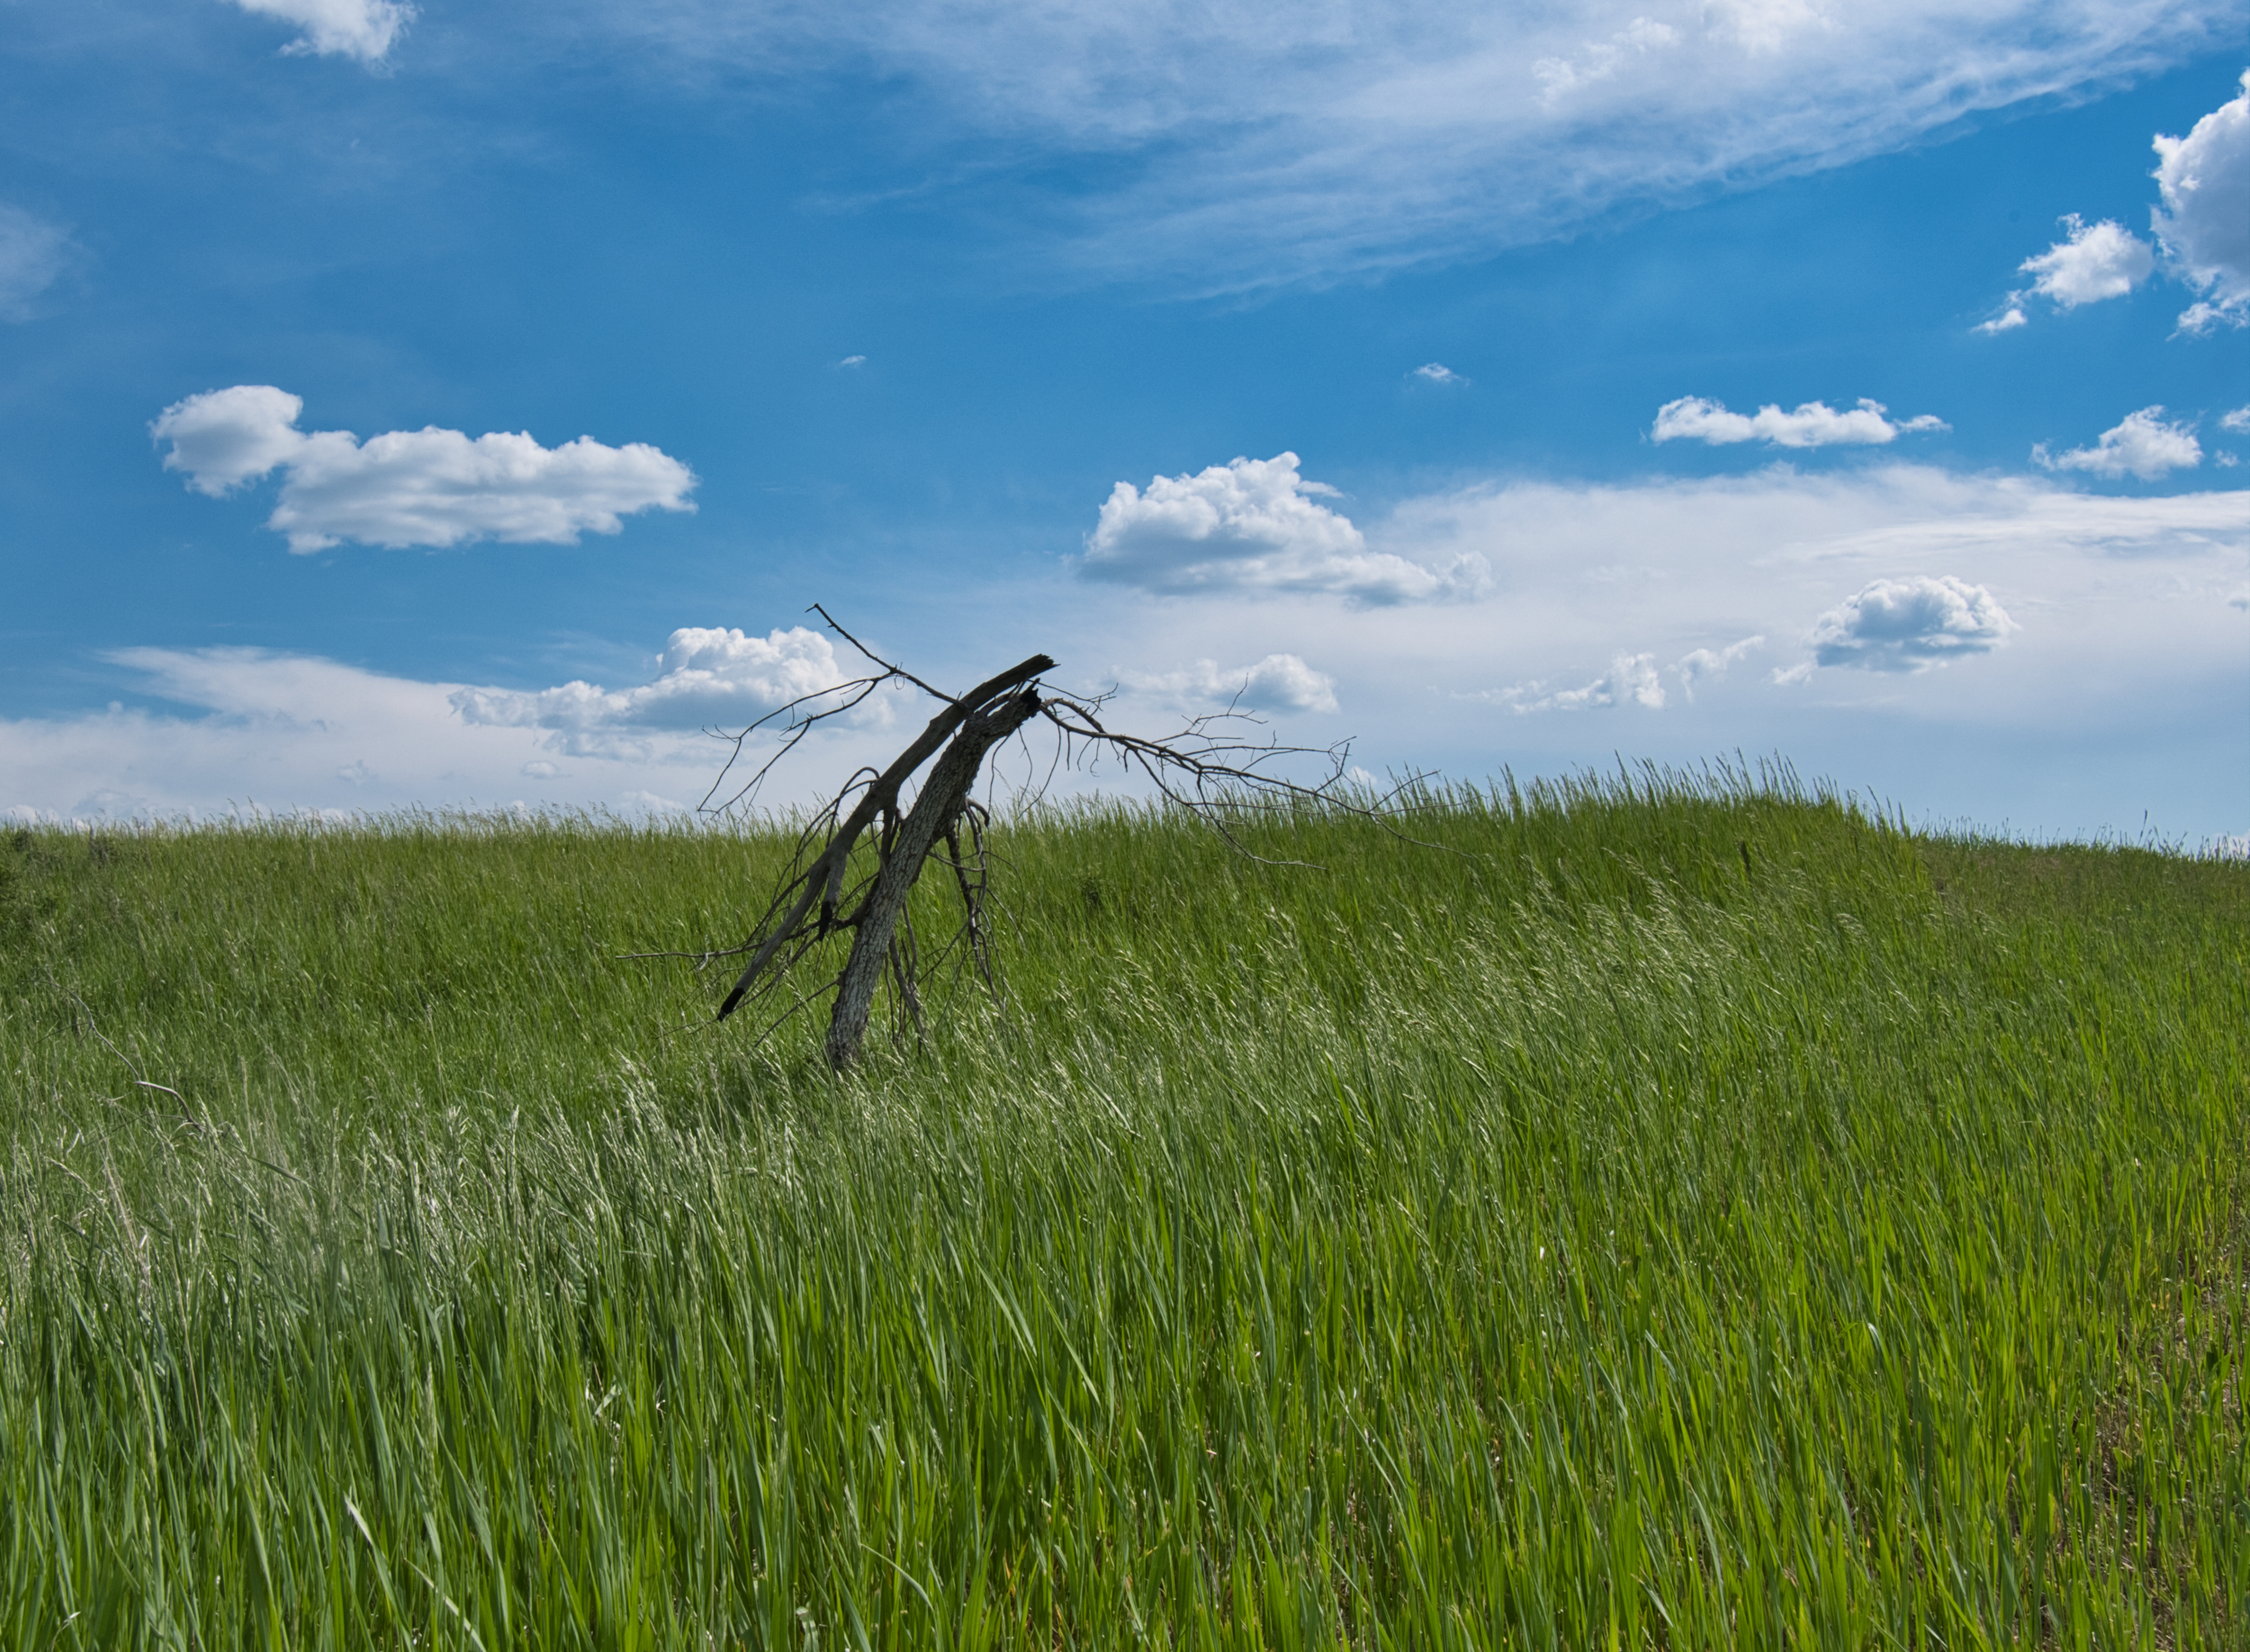 Along the Knife River and Missouri River confluence - beautiful grasslands